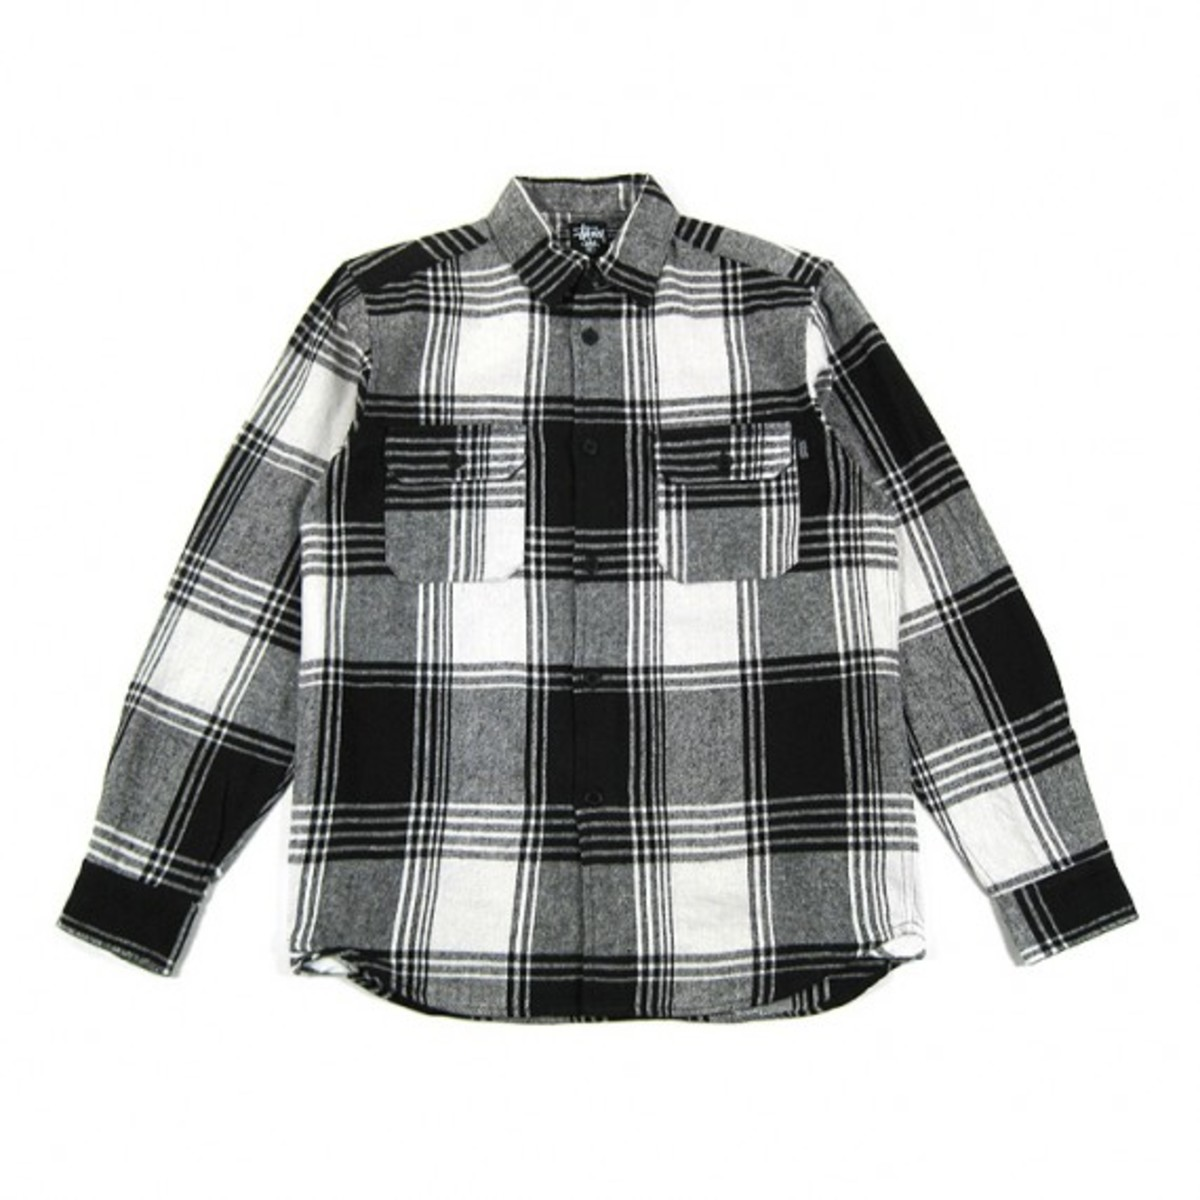 stussy-fall-2009-flannel-shirts-8